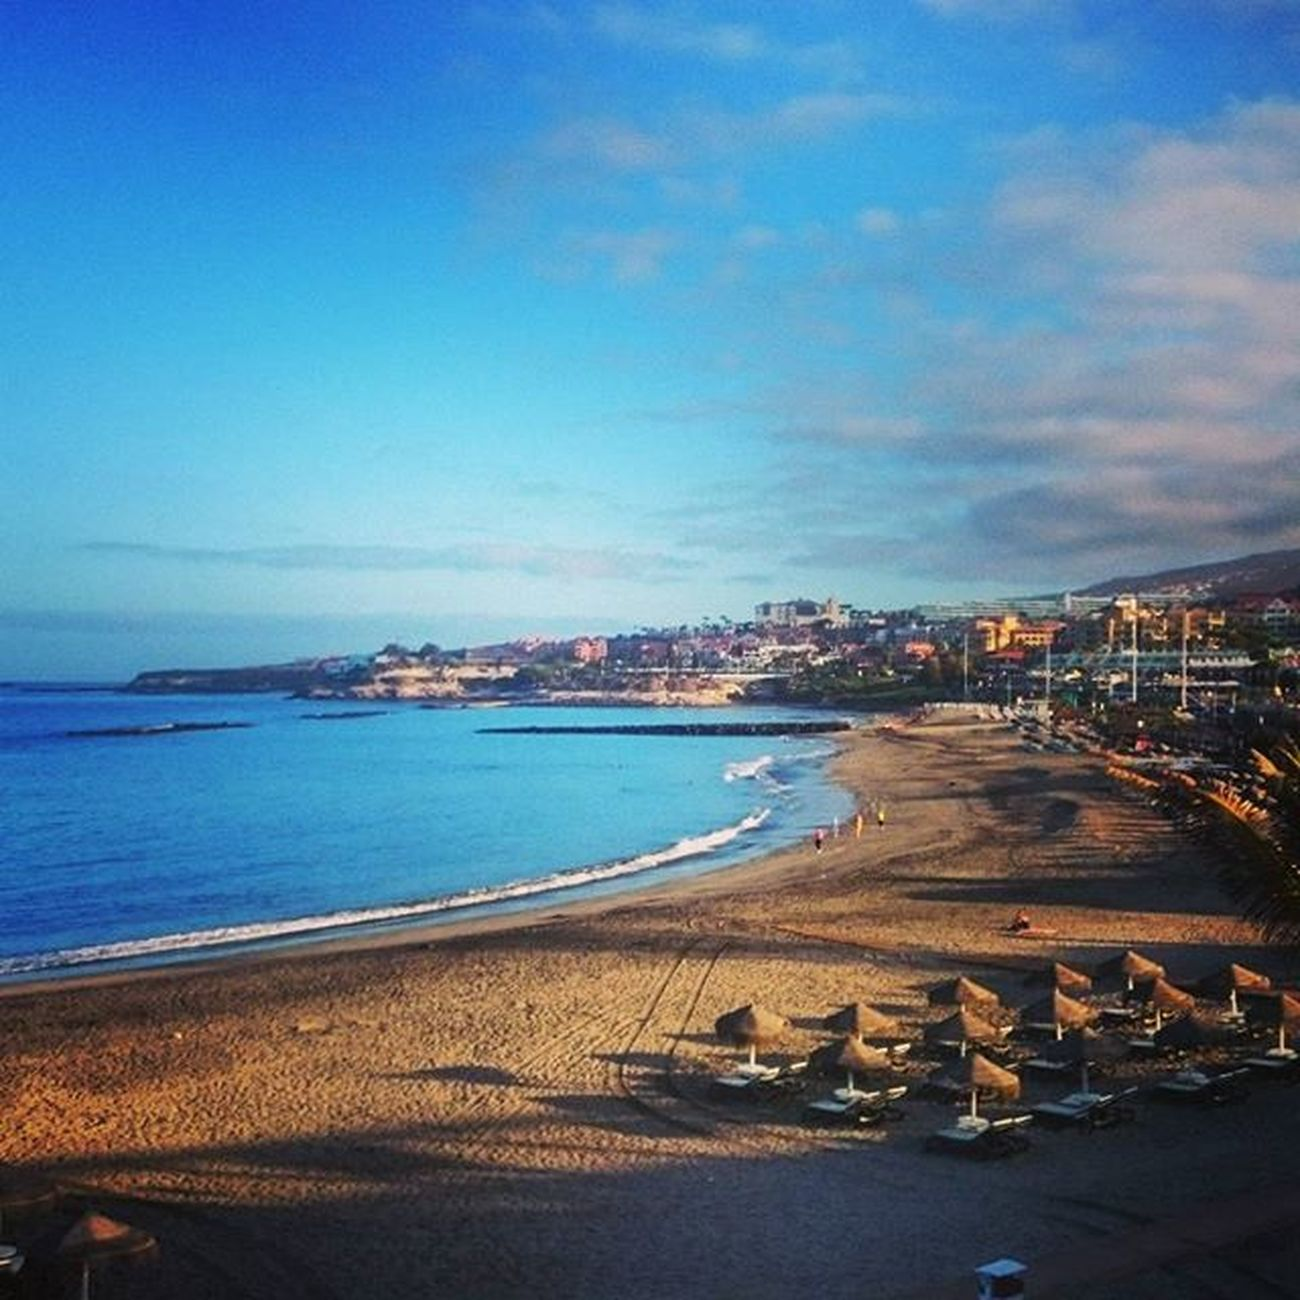 Sunrise Fañabebeach Playafanabe Tenerife Canaryisland 😚 Morning Adventure Love Exploring Travellingeveryday Travelingtheworld  Dontletthejourneystop Keepgoing Lifesarollercoaster Summer Lovelife Onroutetowork Workends Beachtomyself Beachlife Instatravel Instagood 2015  July